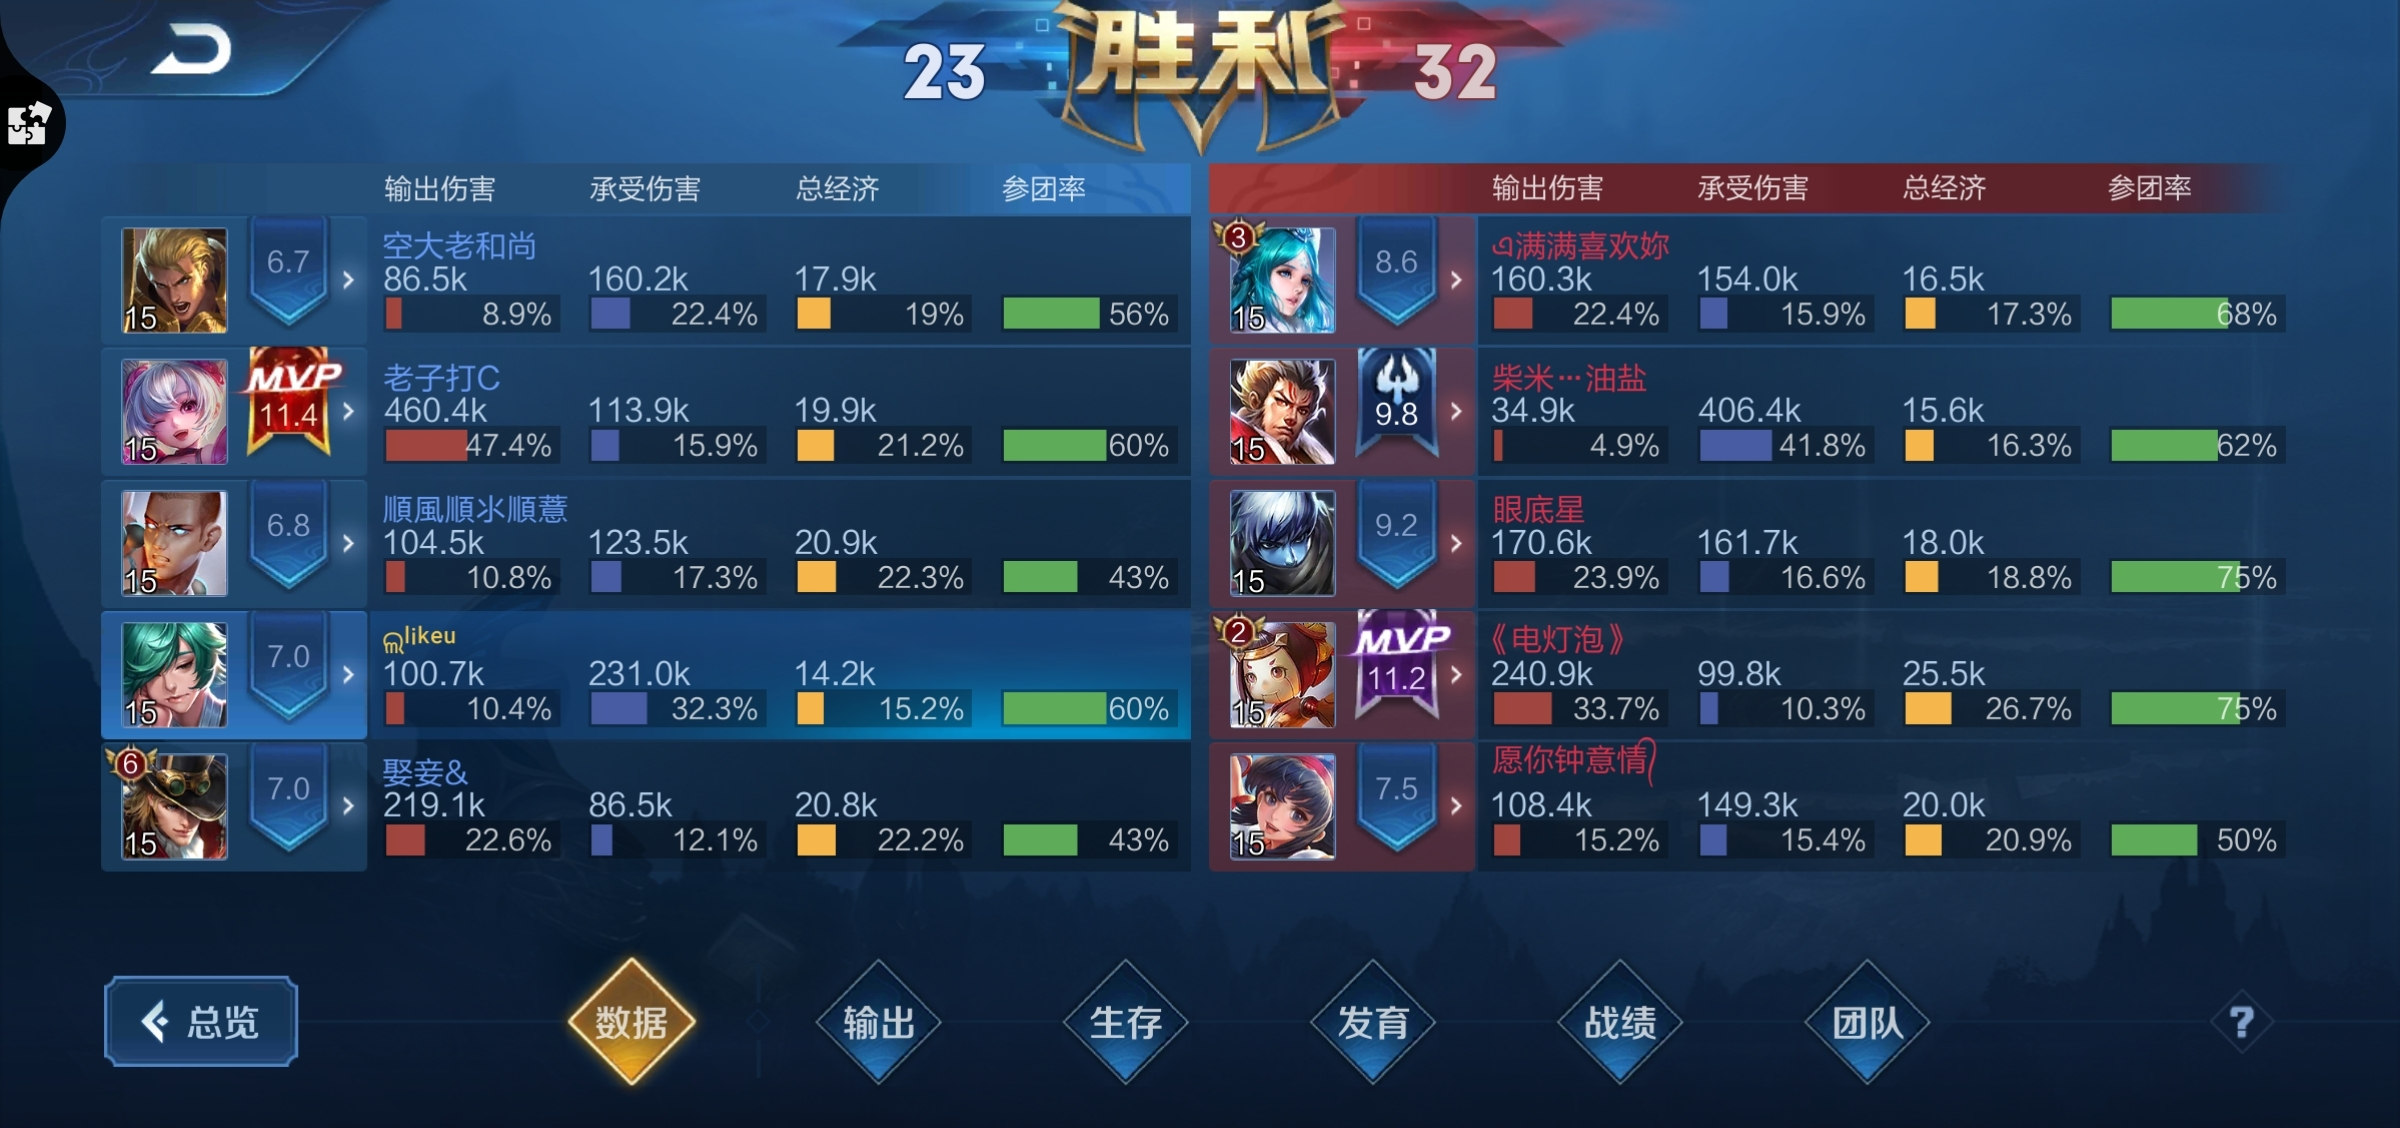 Screenshot_20200810_214405_com.tencent.tmgp.sgame.jpg